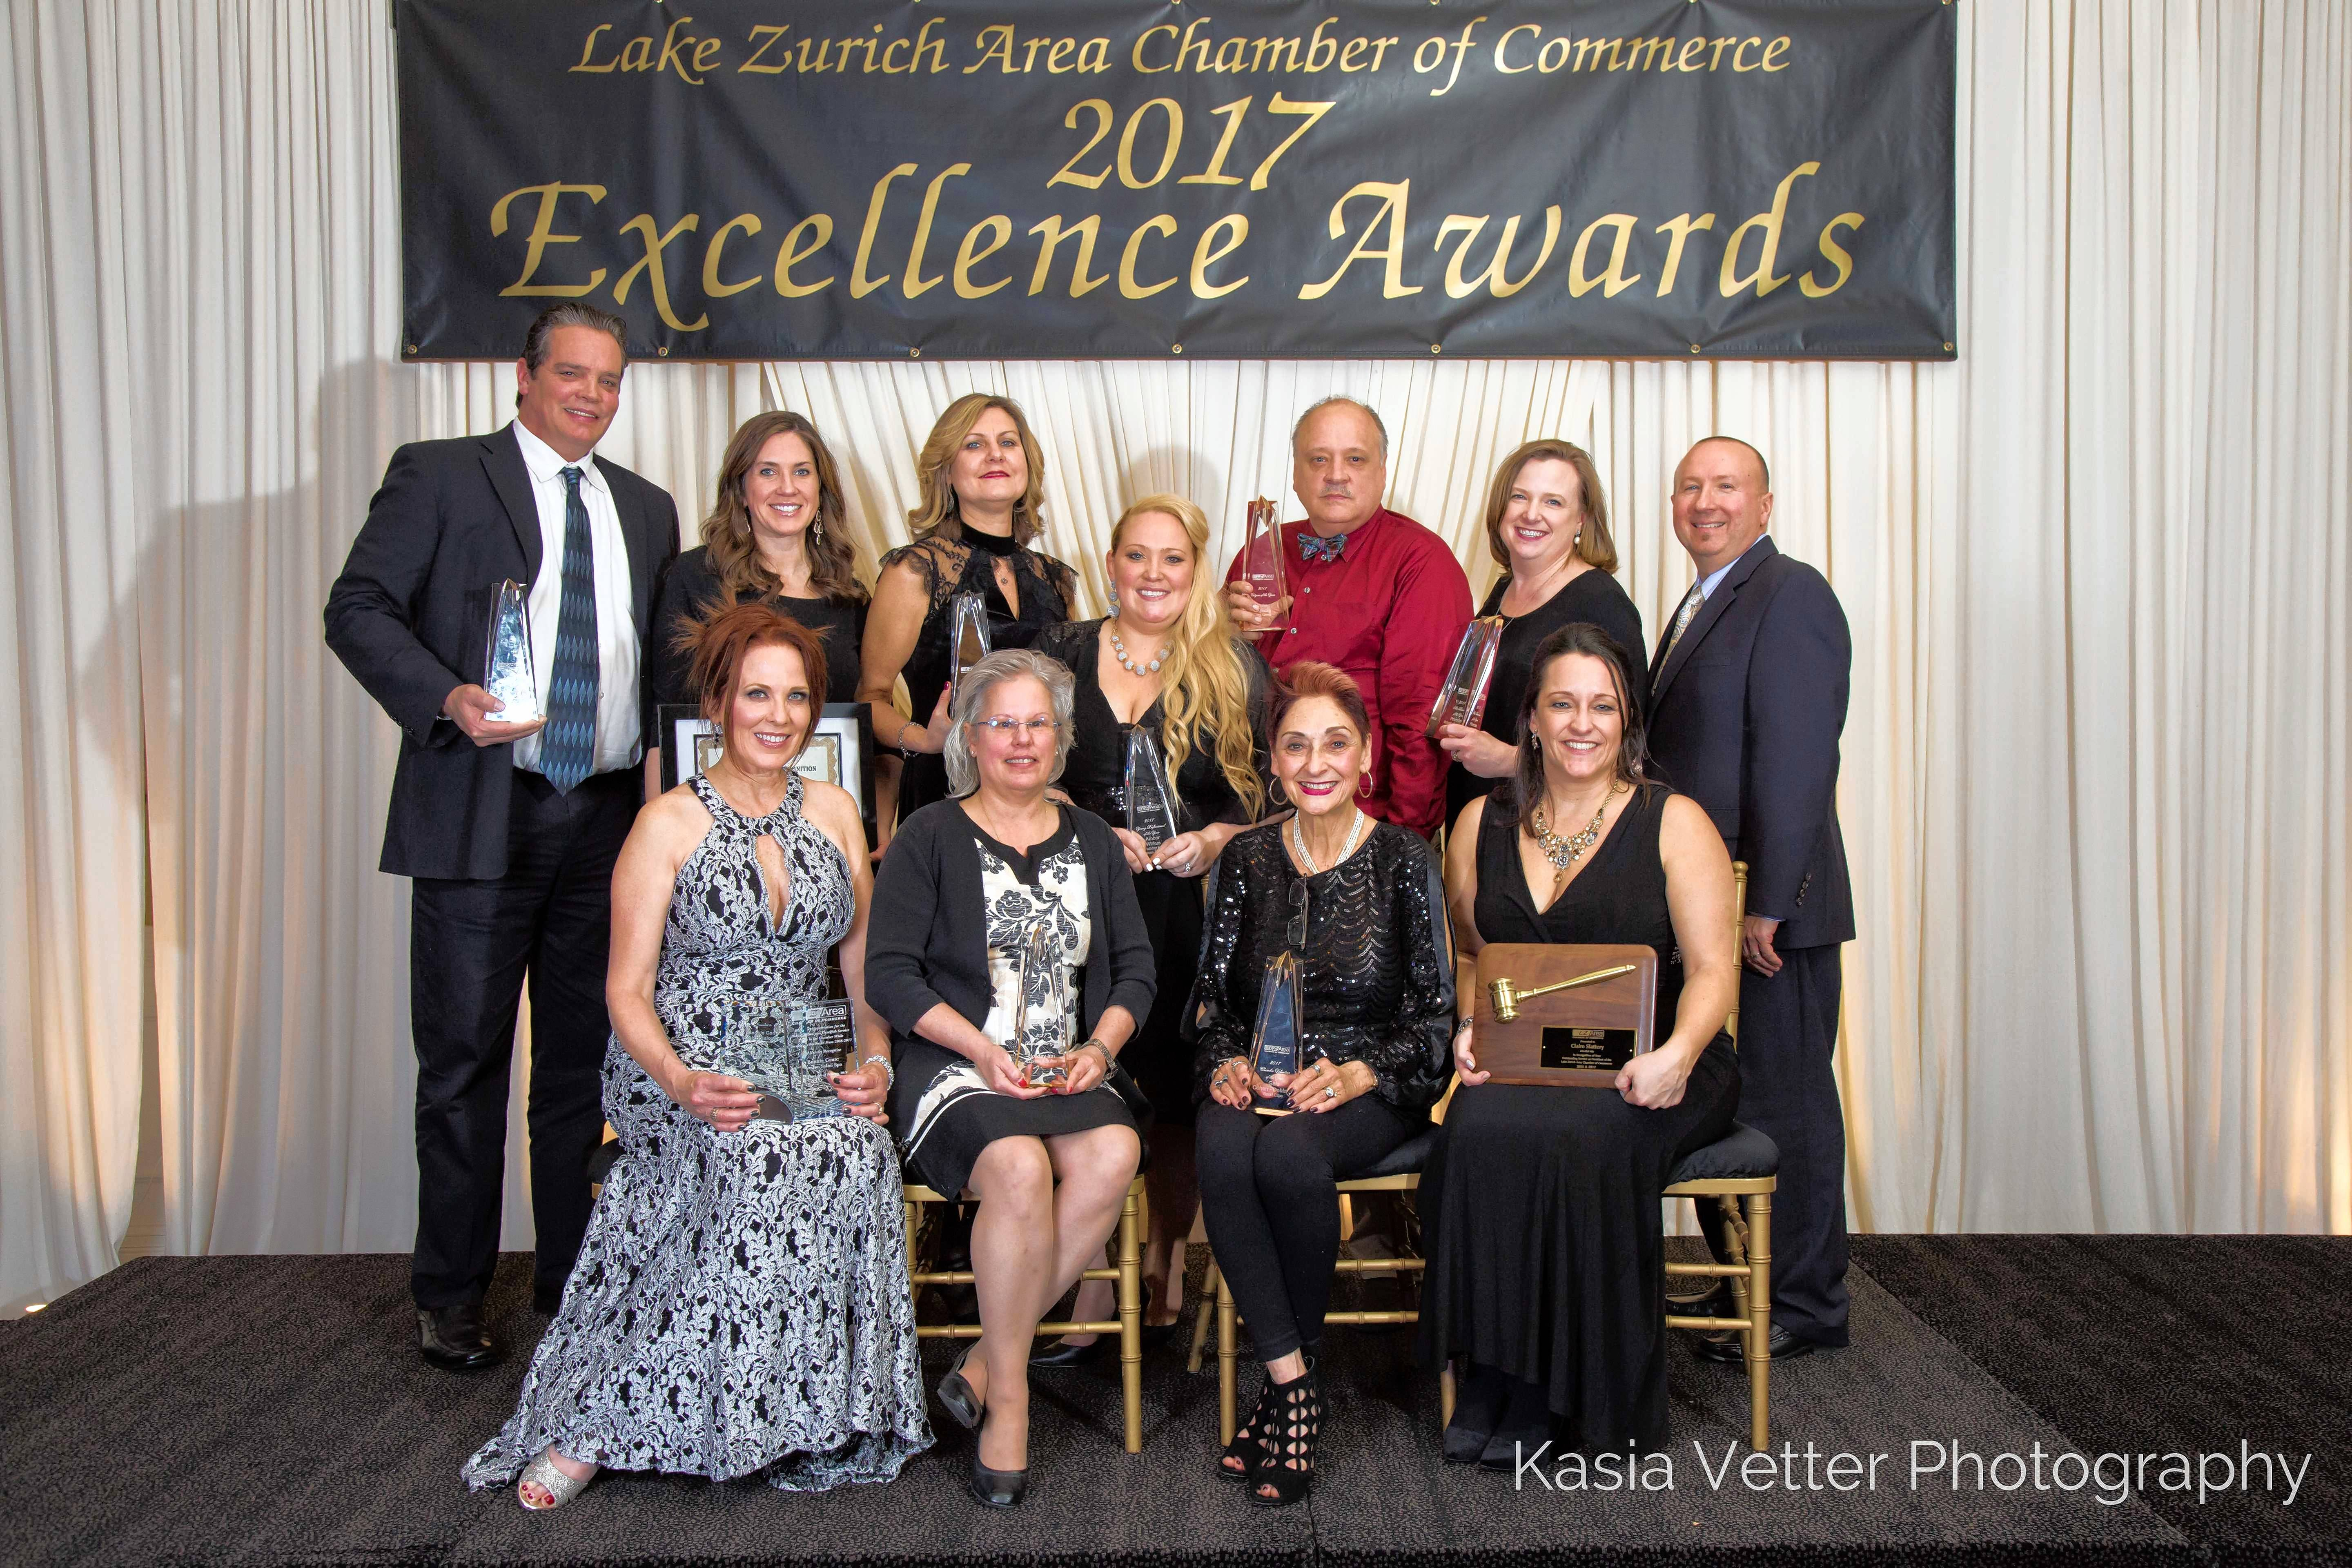 The Lake Zurich Area Chamber of Commerce announced the award recipients for the 2017 Excellence Awards at their annual Evening of Excellence Awards Gala.